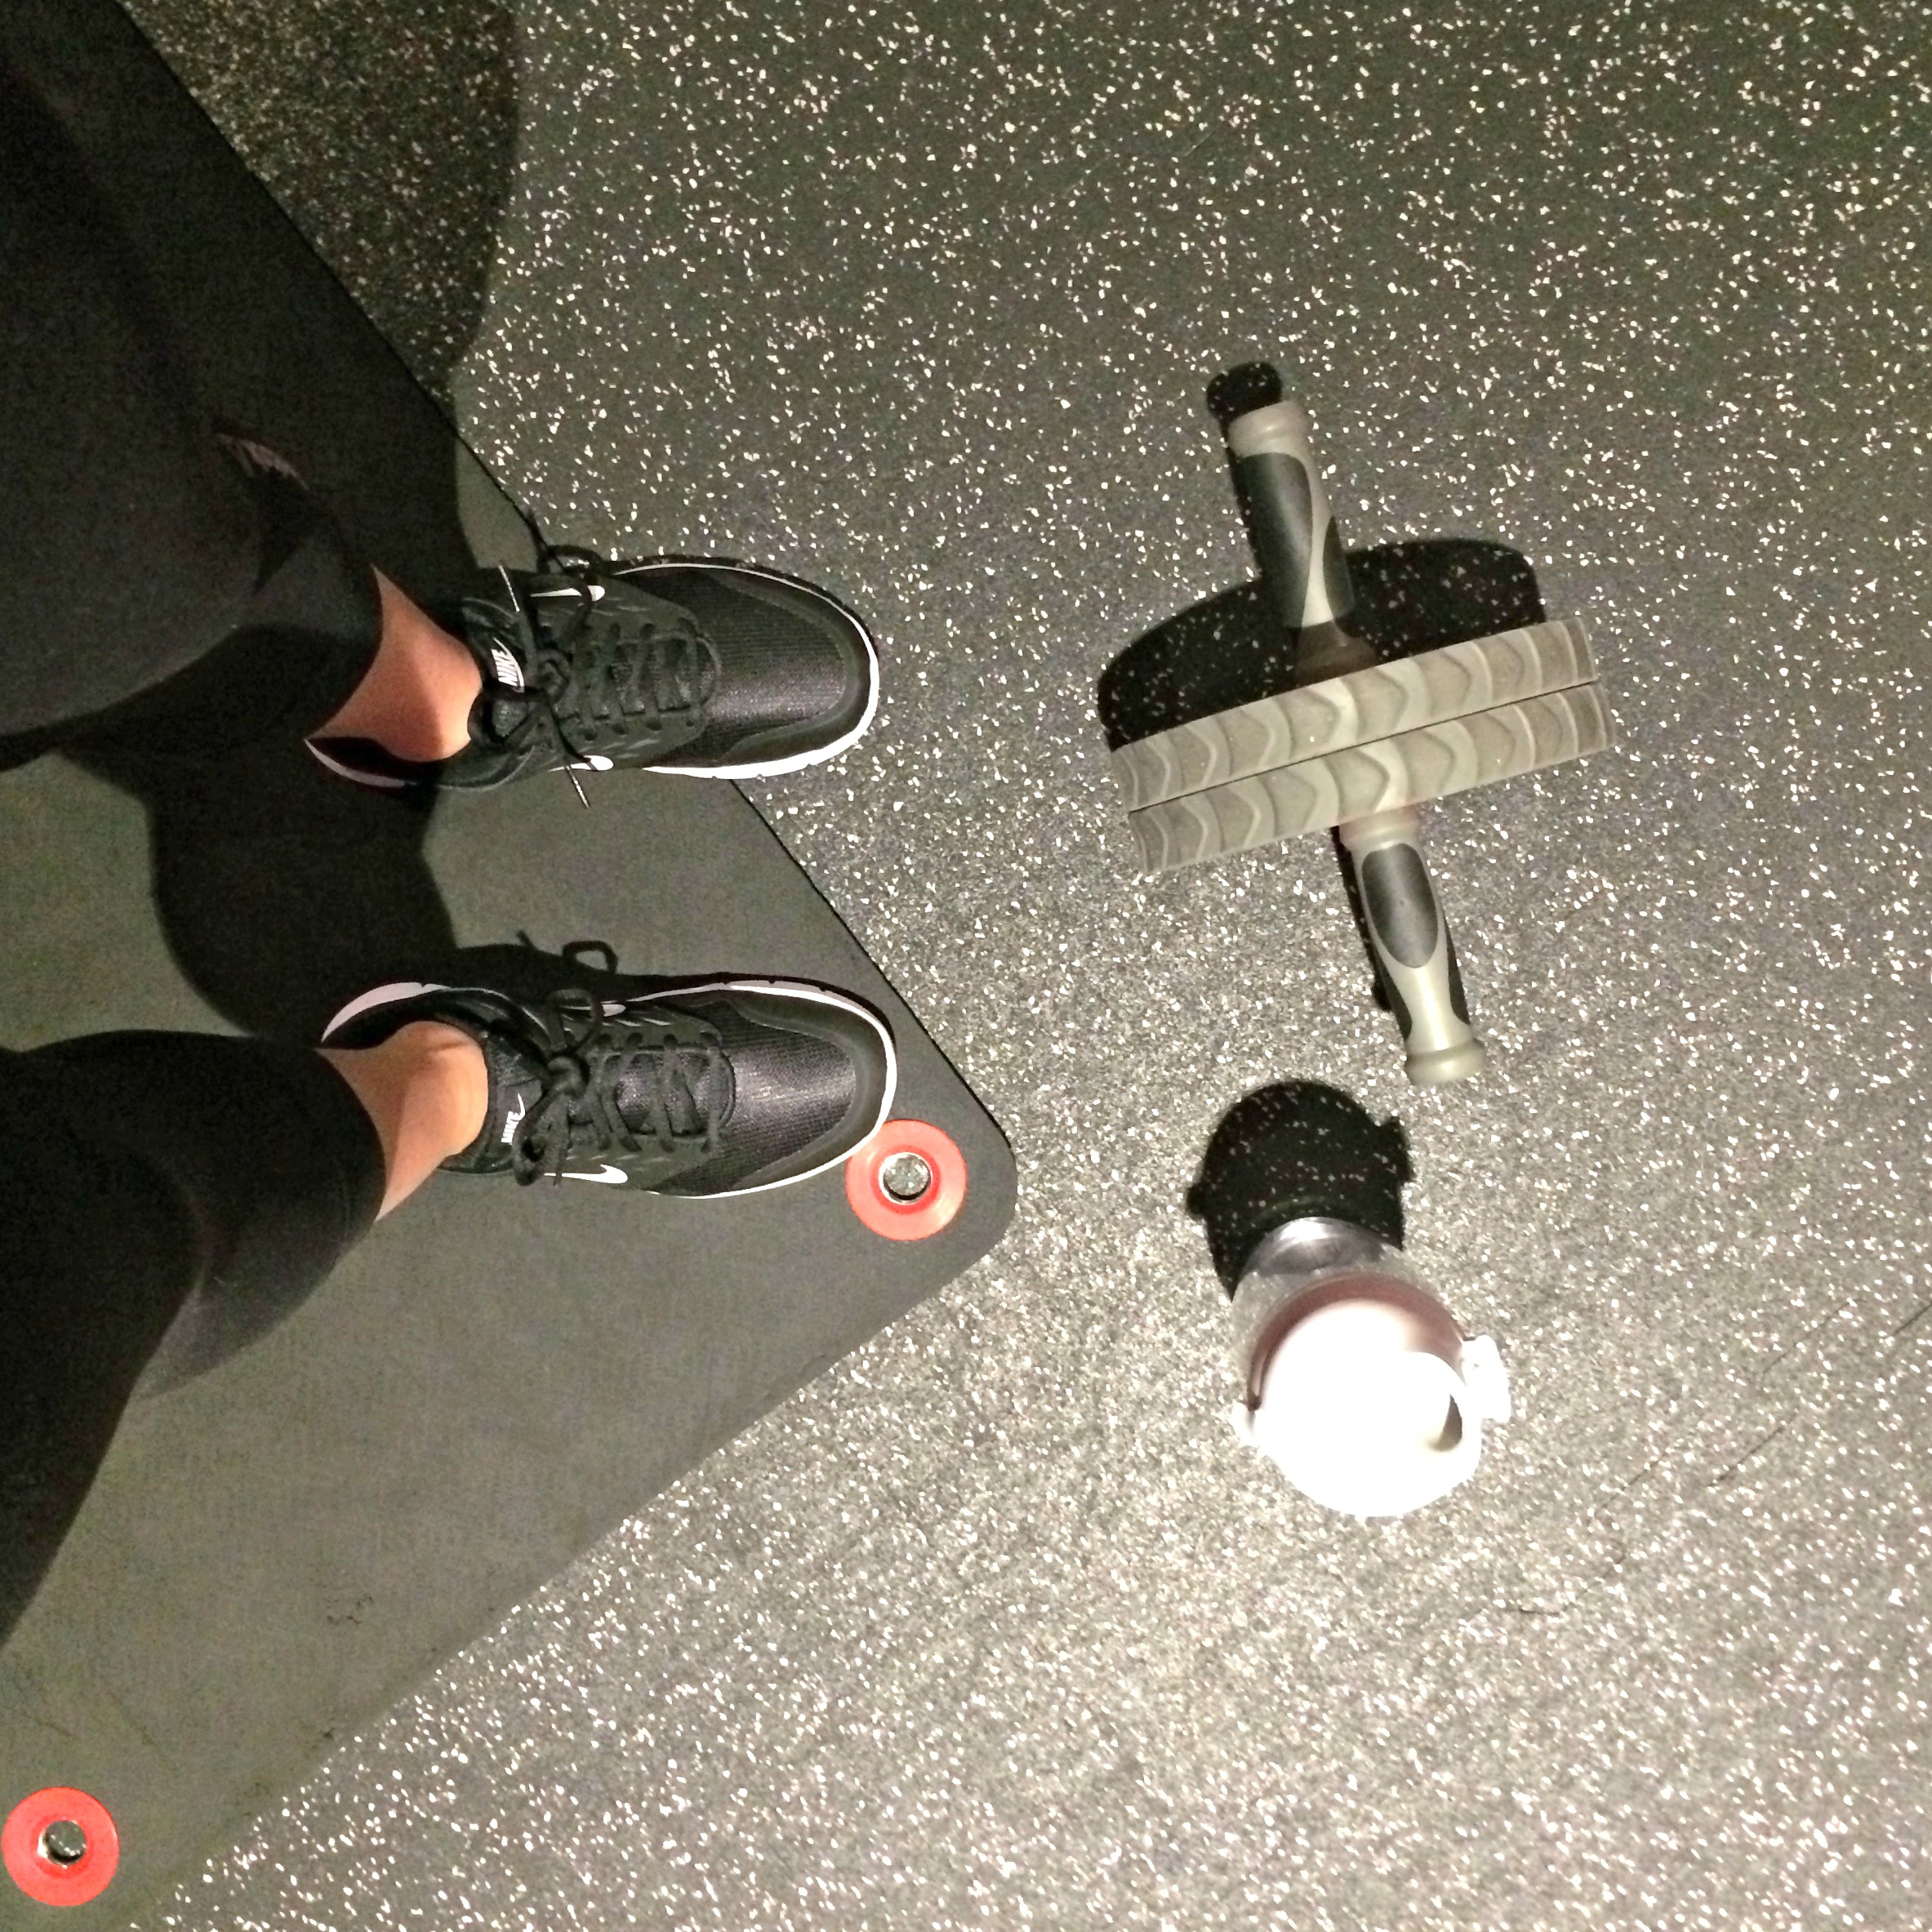 ab wheel and exercises at gym